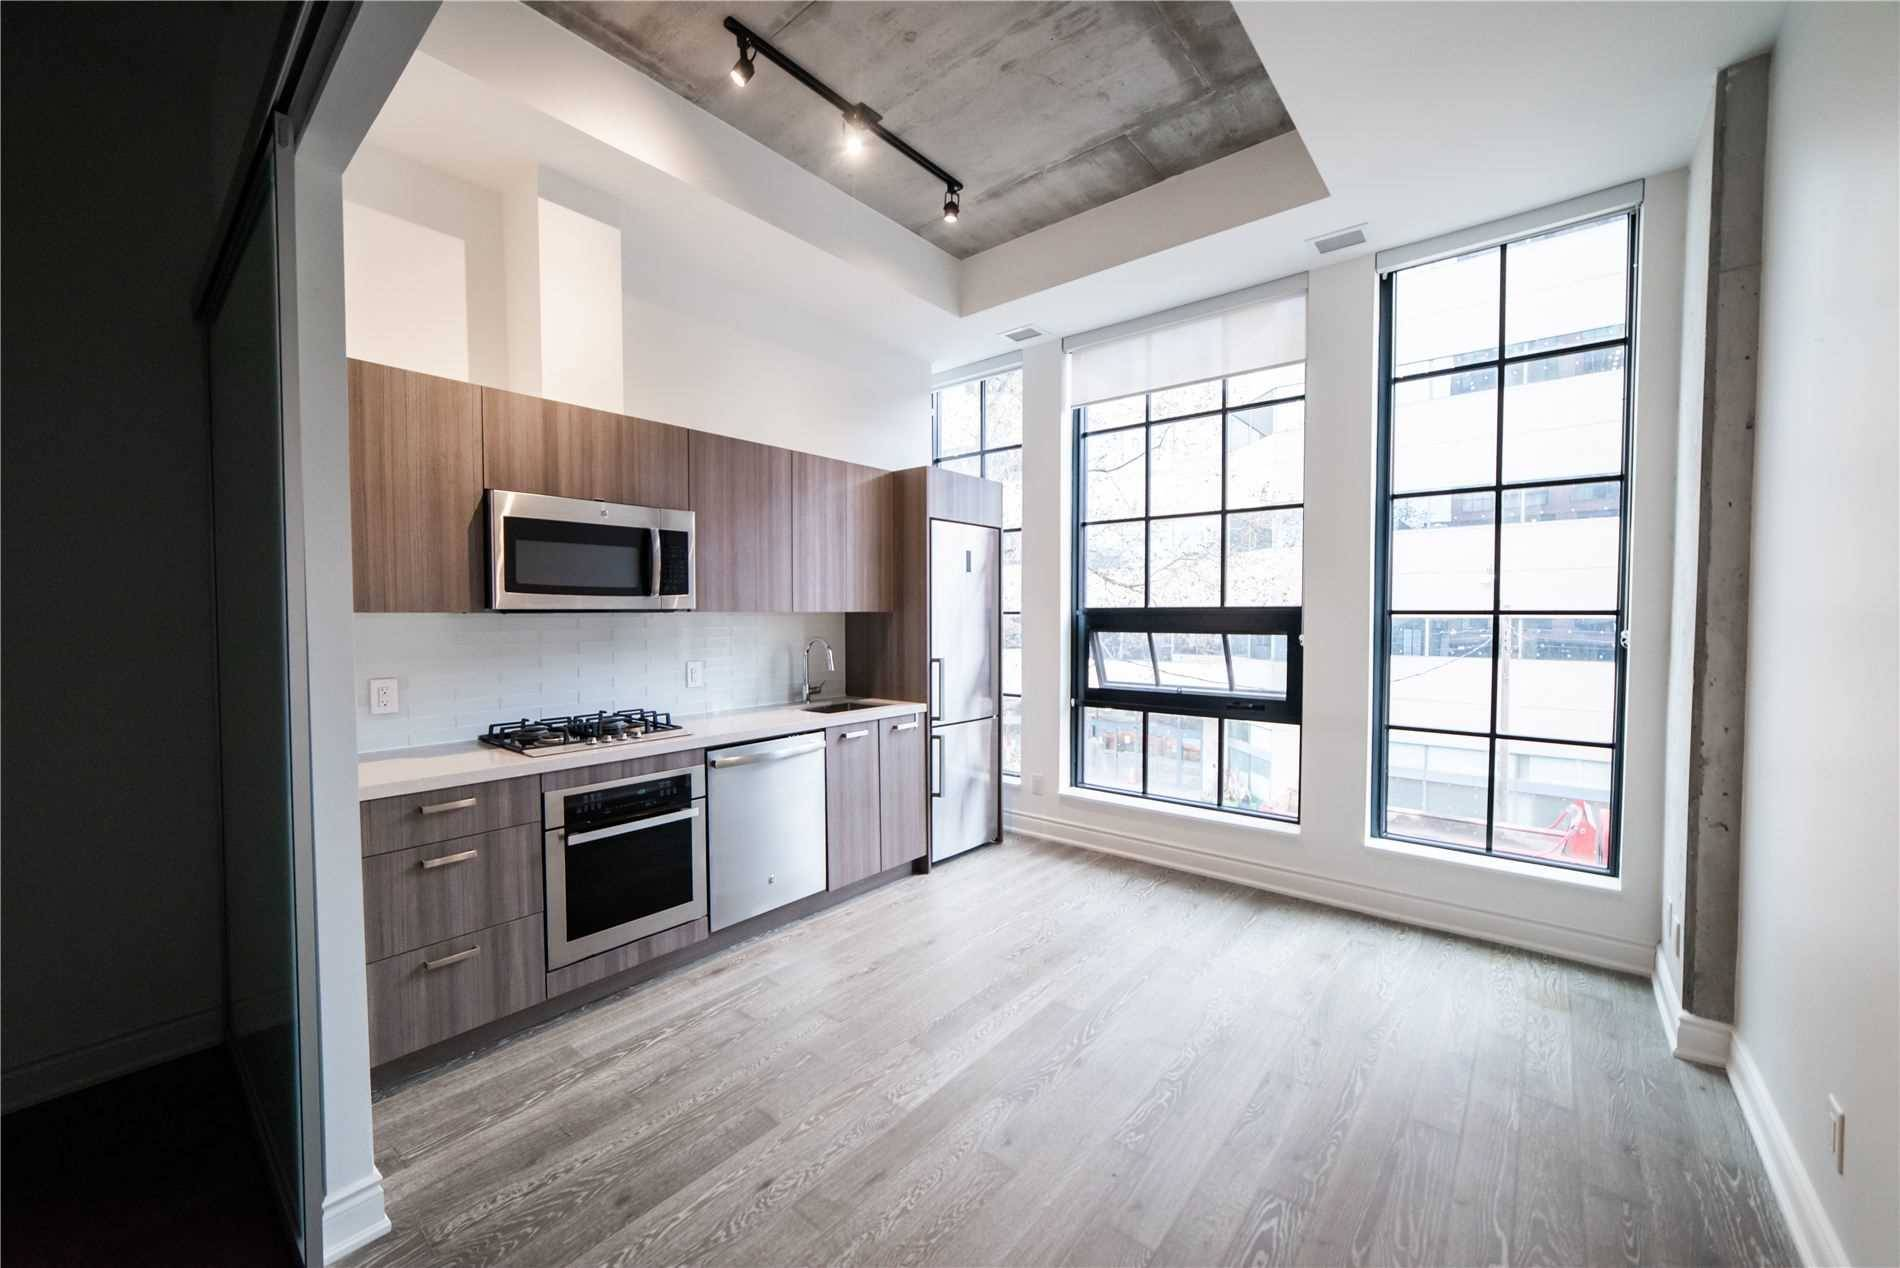 Home for sale at 608 Richmond St Unit 201 Toronto Ontario - MLS: C4584612